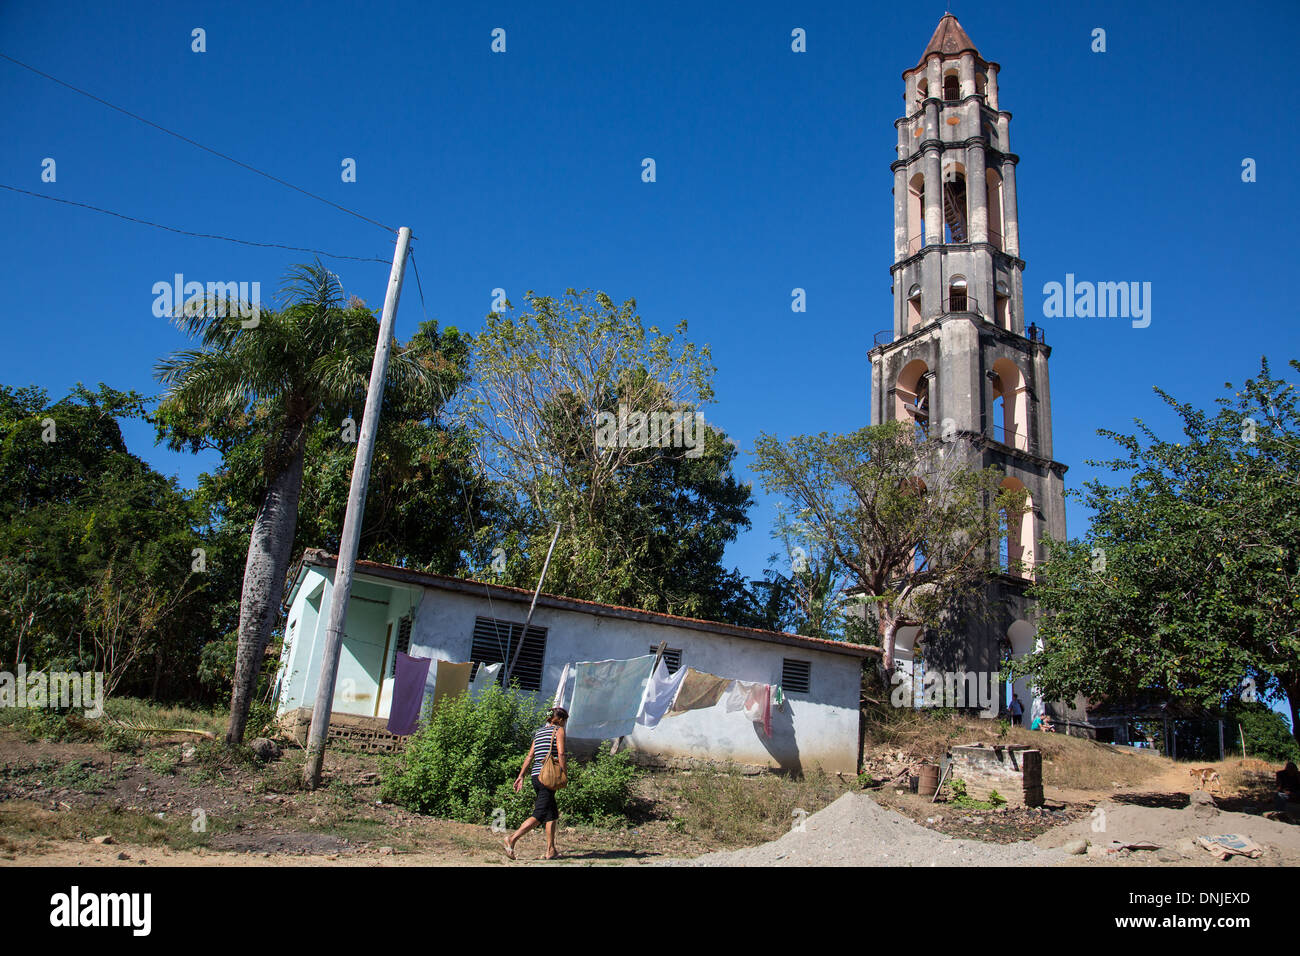 TORRE DE MANACA IGNAZA (44 METRES HIGH), SURVEILLANCE TOWER FOR WATCHING THE BLACK AFRICAN SLAVES ON THE OLD SUGAR CANE PLANTATION, LOS INGENIOS VALLEY, LISTED AS A WORLD HERITAGE SITE BY UNESCO, CUBA, THE CARIBBEAN - Stock Image